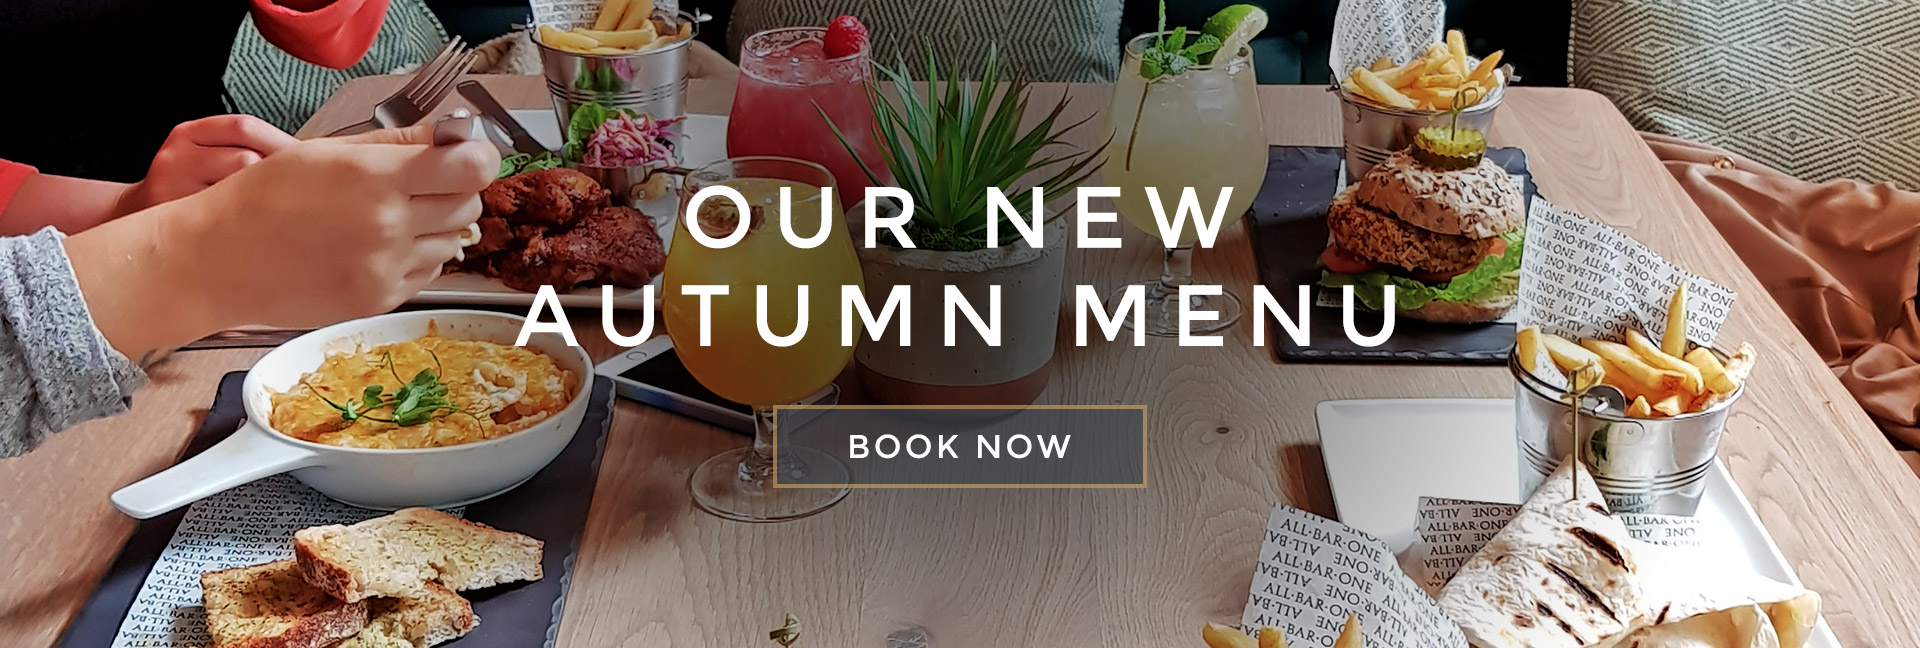 Our new Autumn menu at All Bar One - Book now